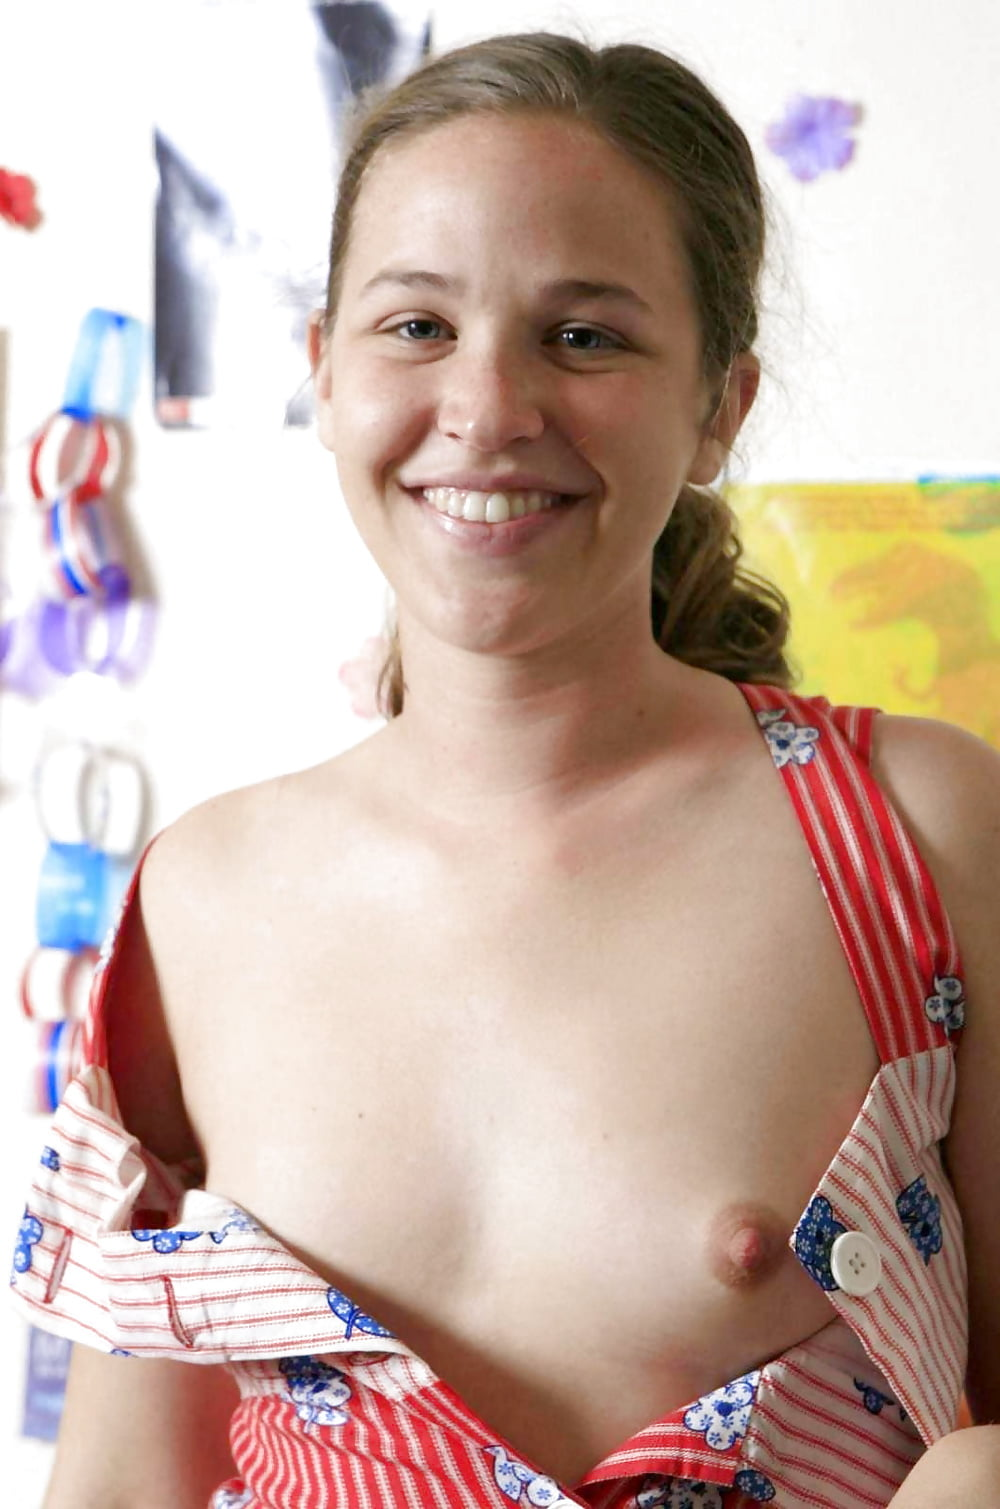 Abby winters downblouse, suckin boobs in wild way pictures